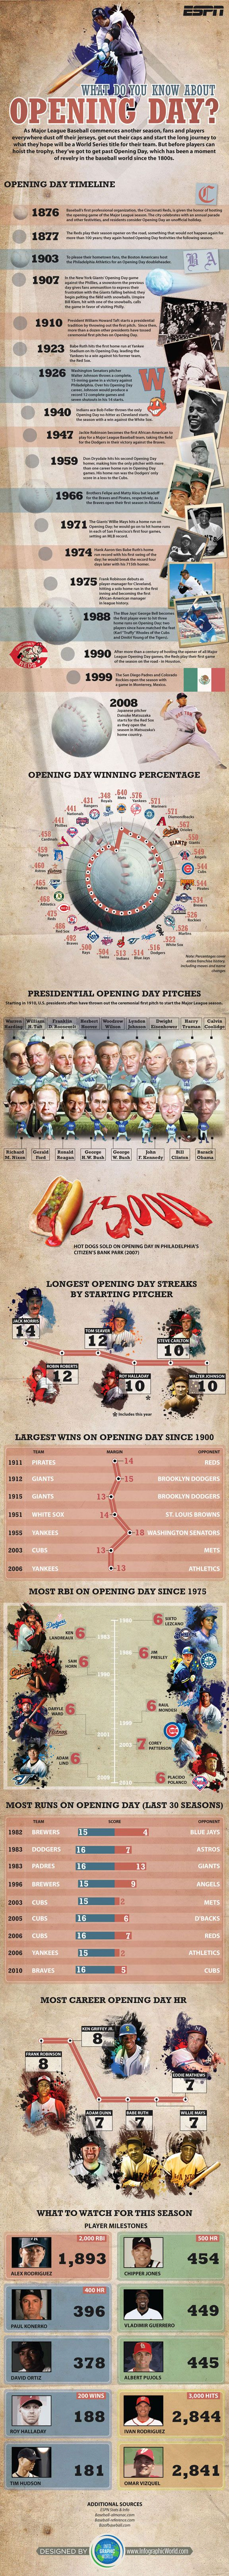 Fun opening Day Stats for baseball fans!